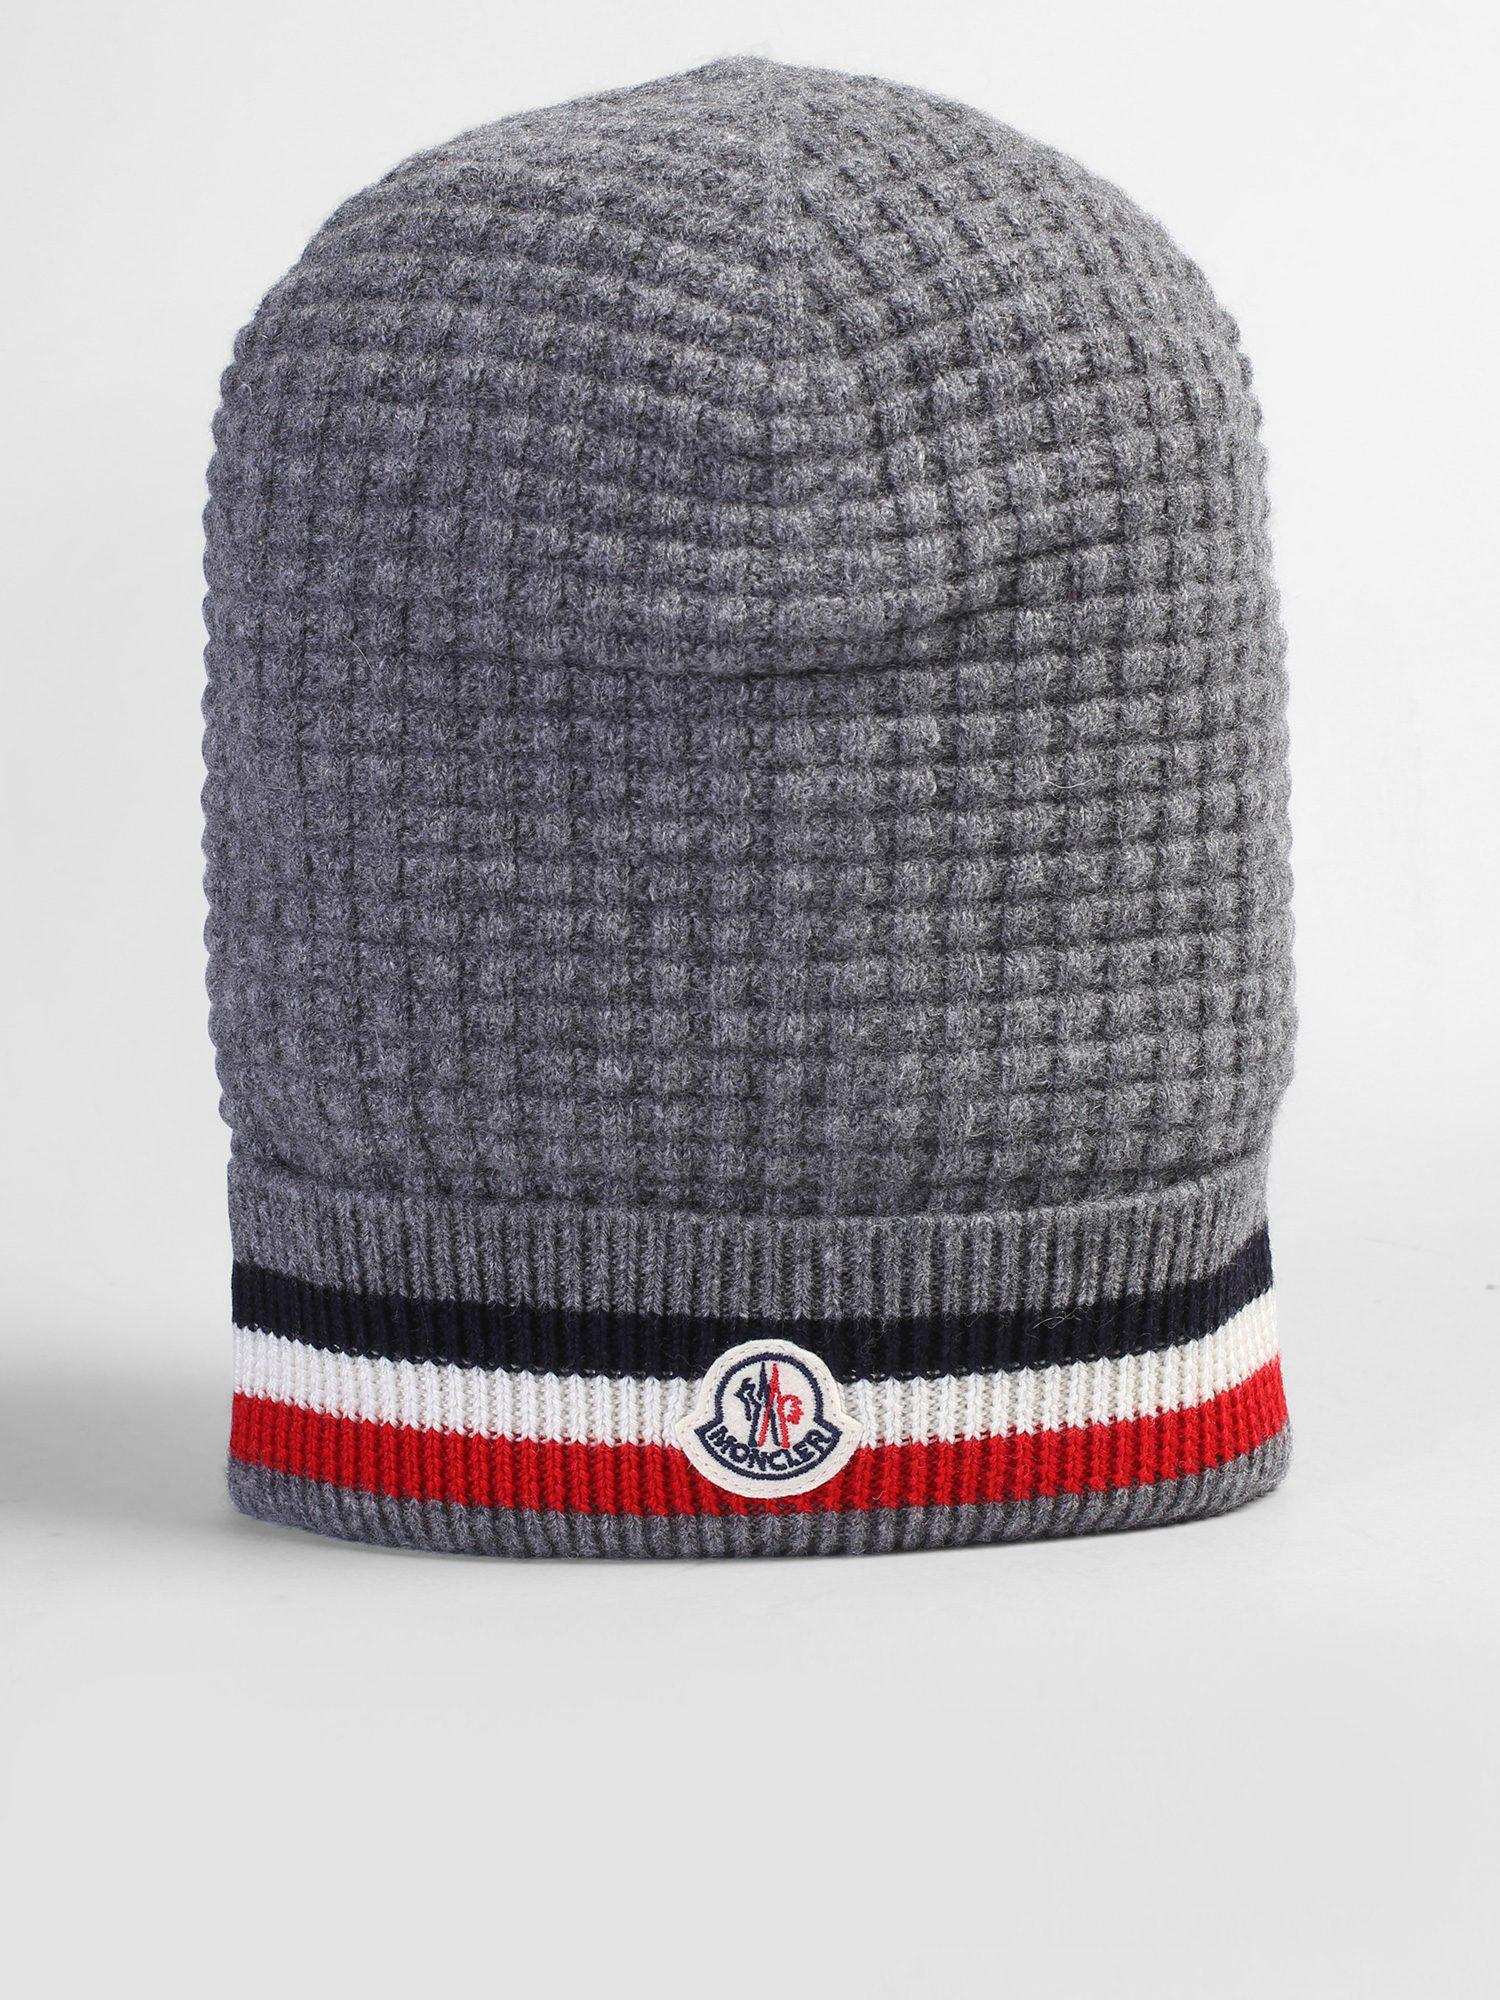 606a3e56f16 Lyst - Moncler Cashmere And Virgin Wool Beanie in Gray for Men